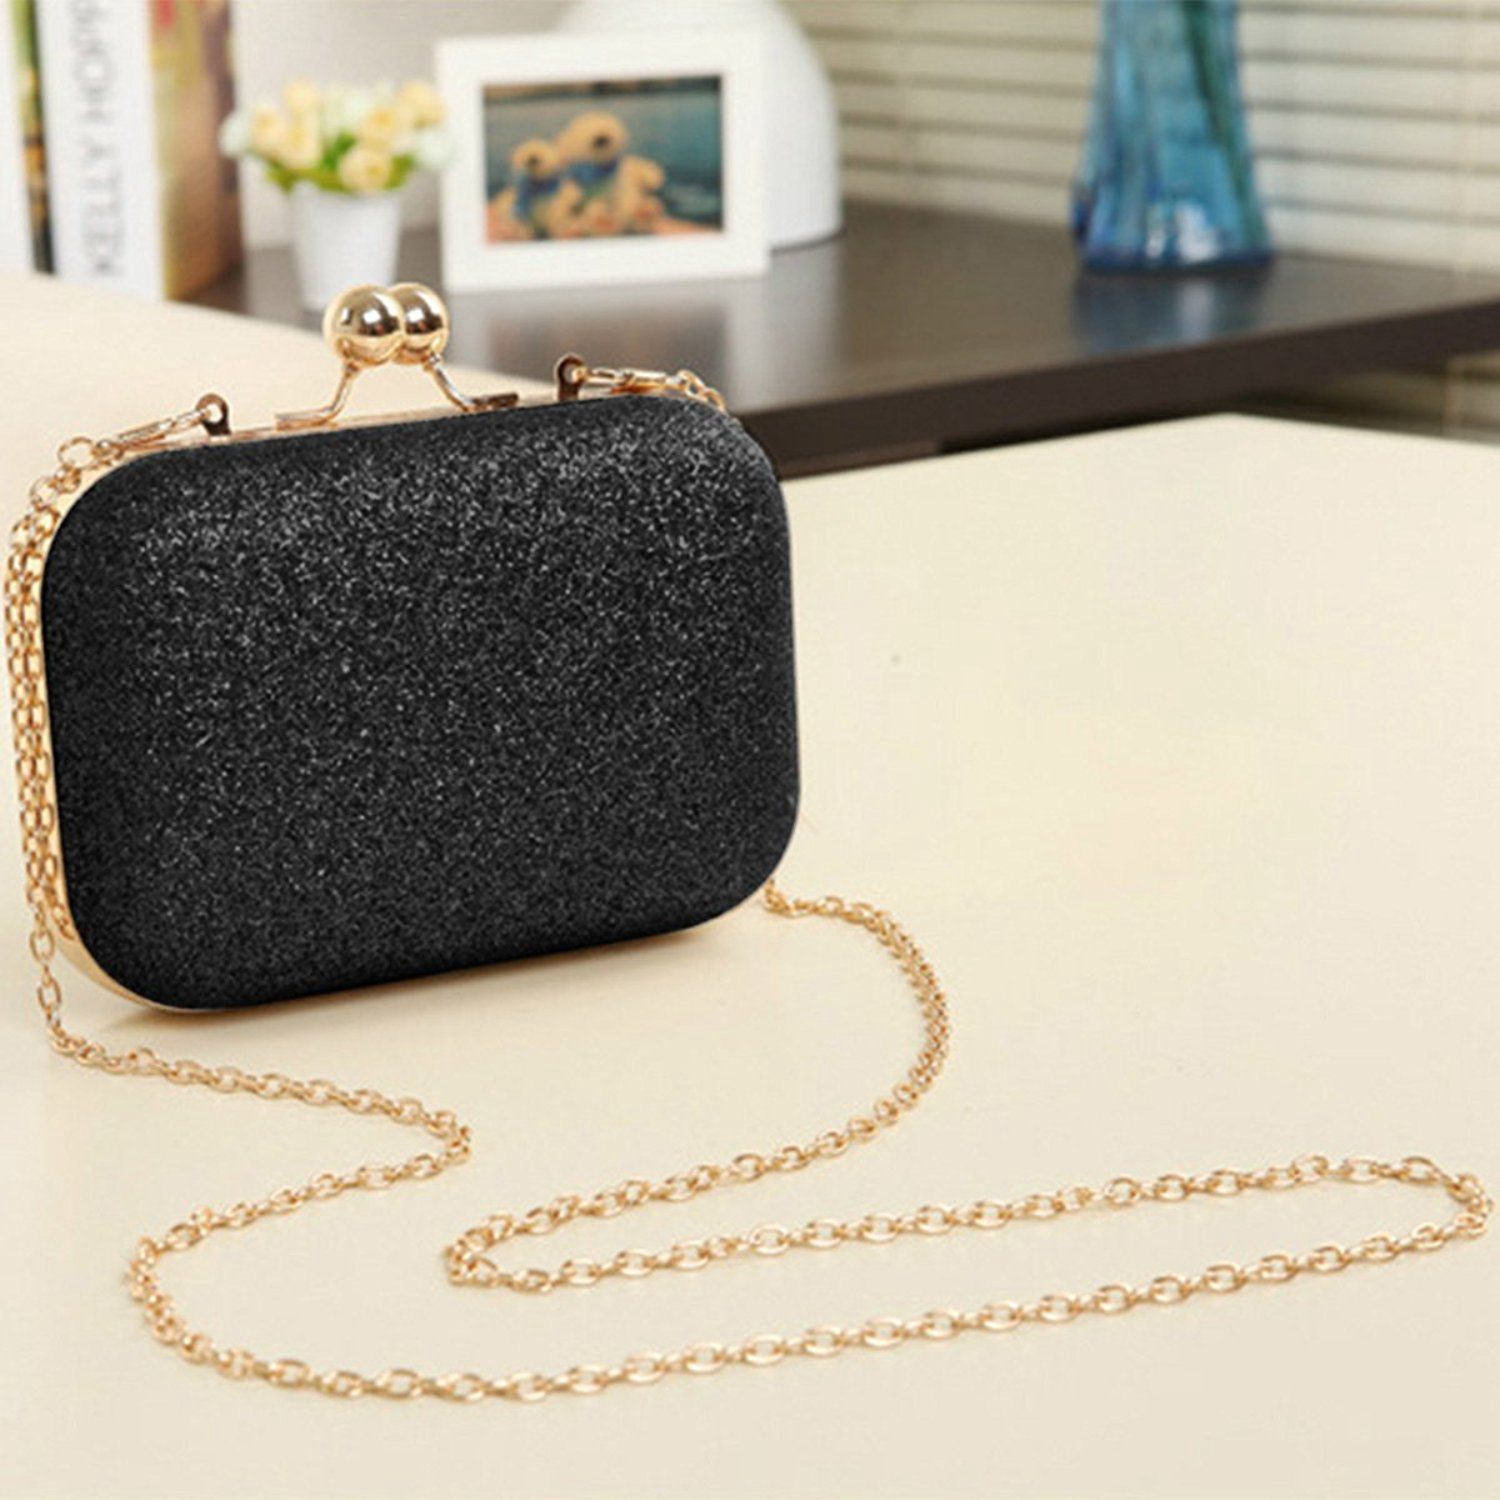 Clutch-Bag Chain Wedding-Ball Evening-Party-Handbag Black Bling Mini Women's with Valentine's-Day